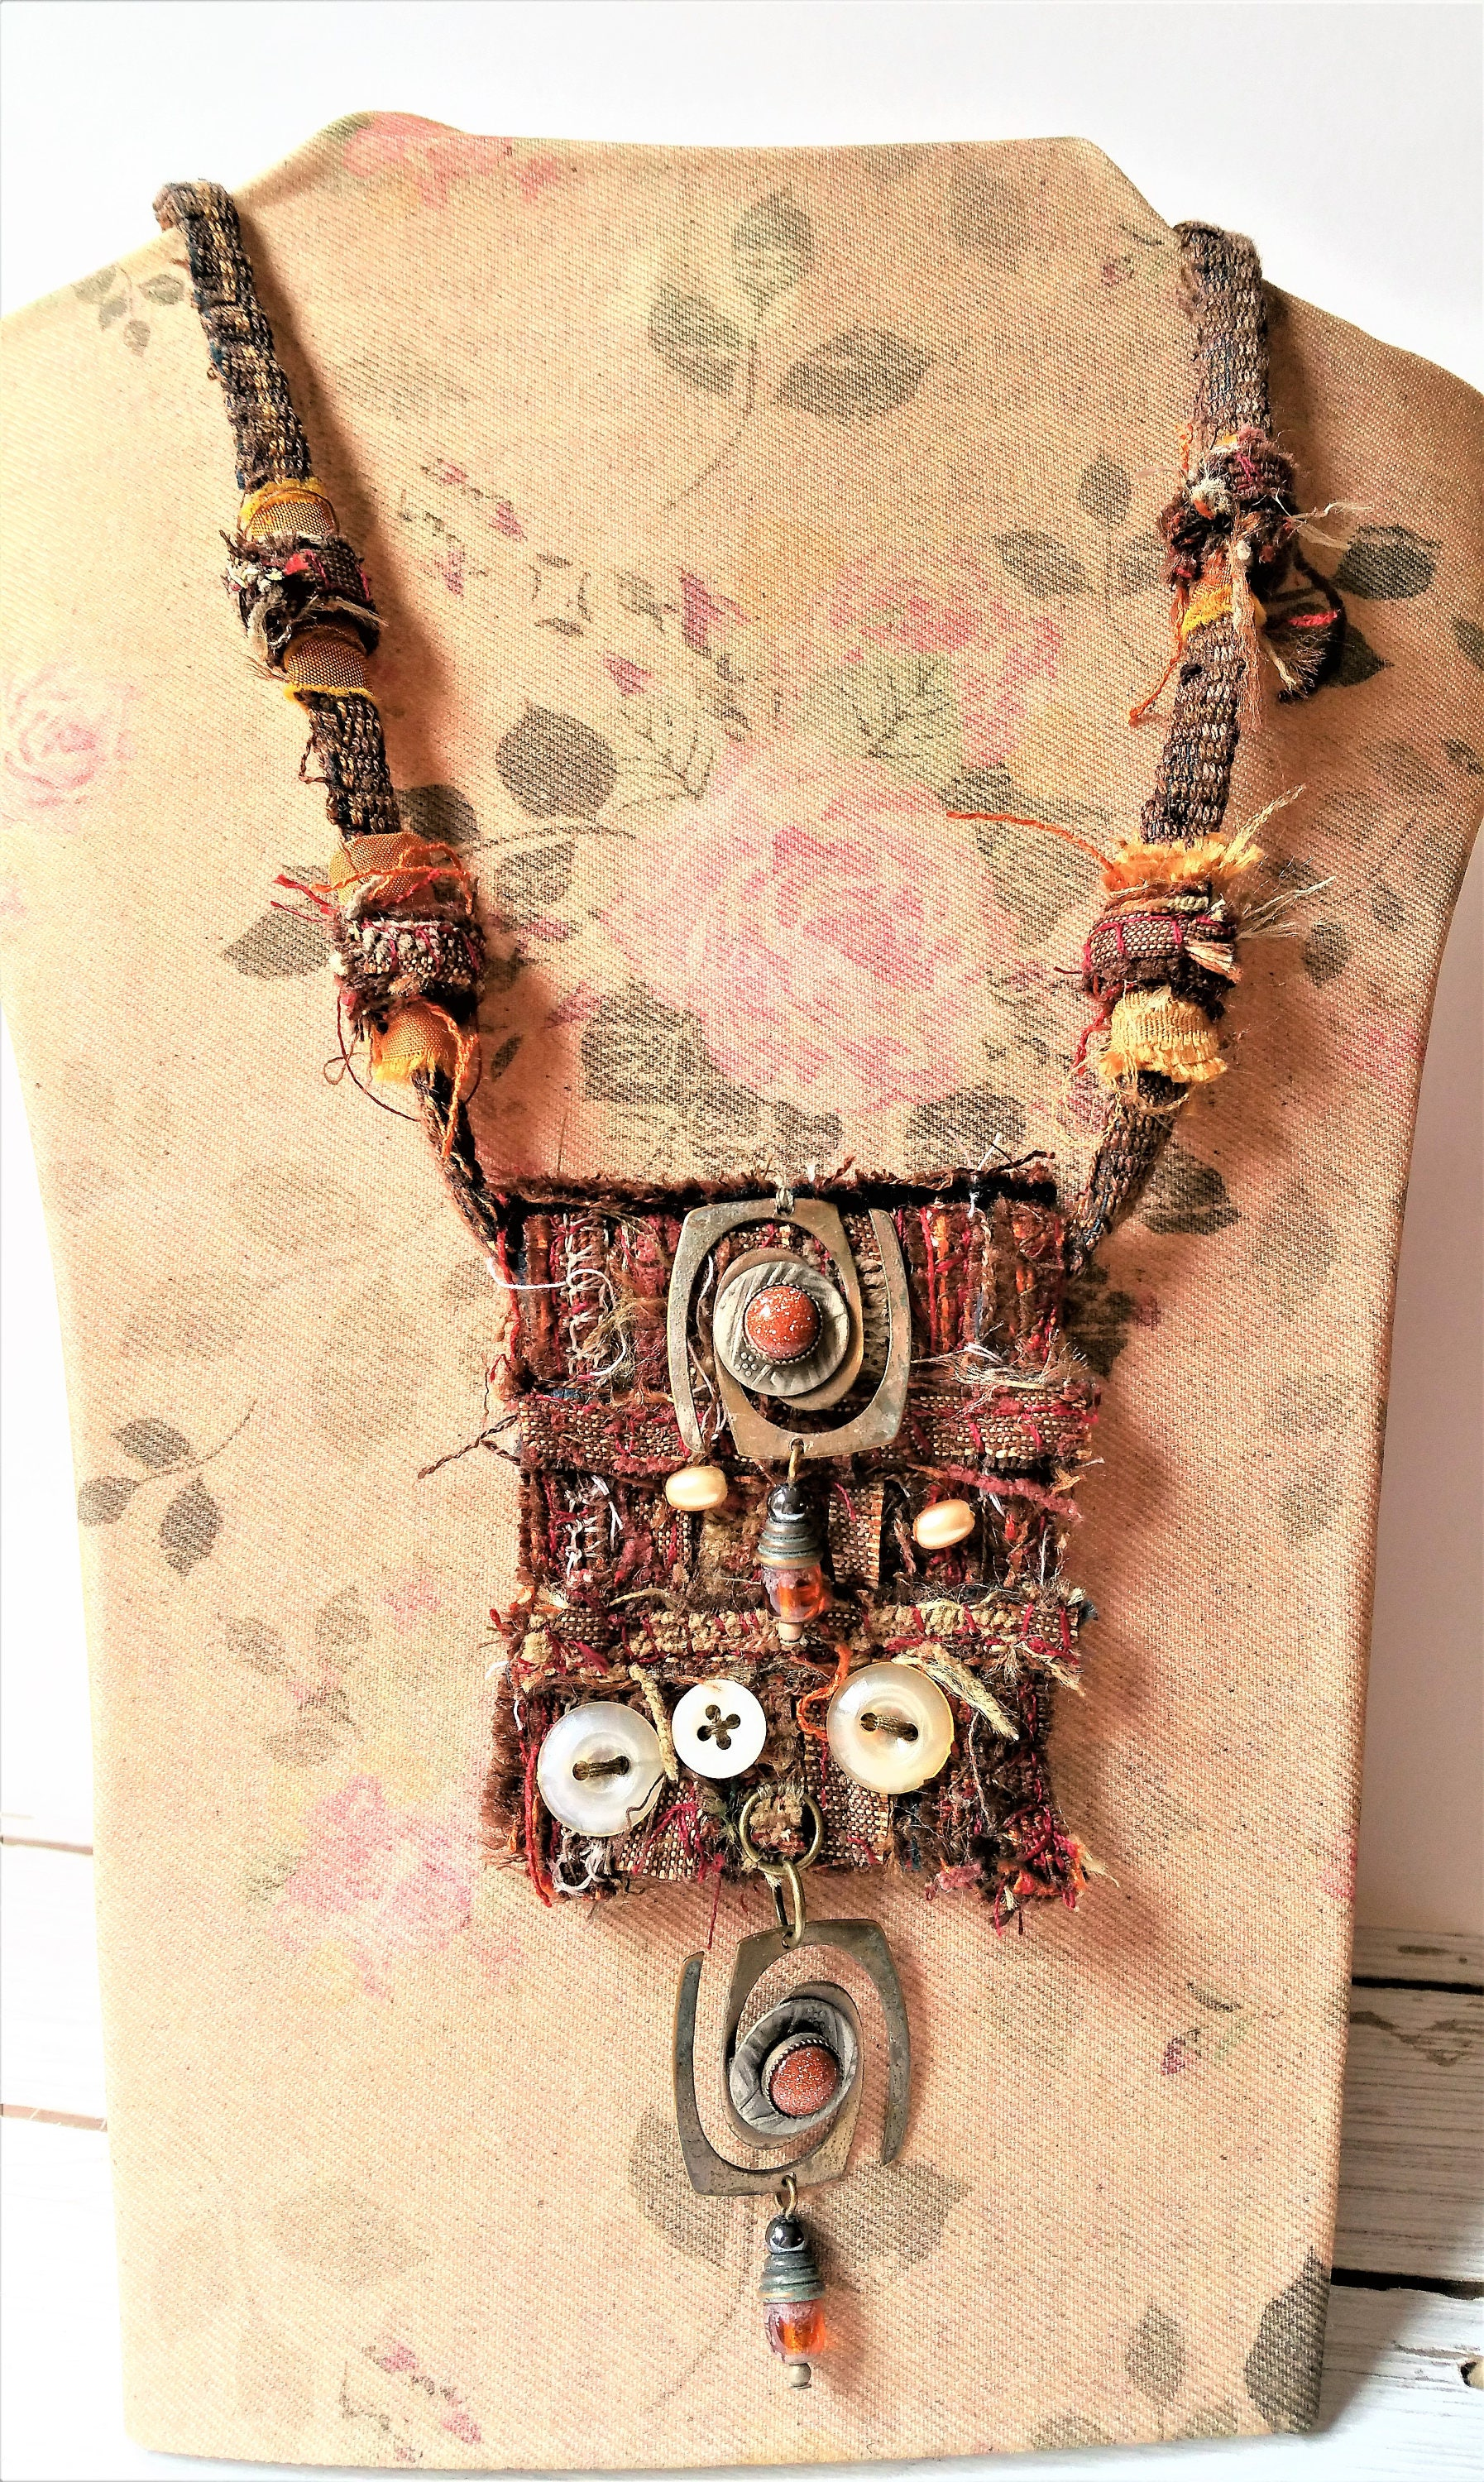 designs tin g flickr button the necklace vintage nemer b photos gemma from exhibition by called textile